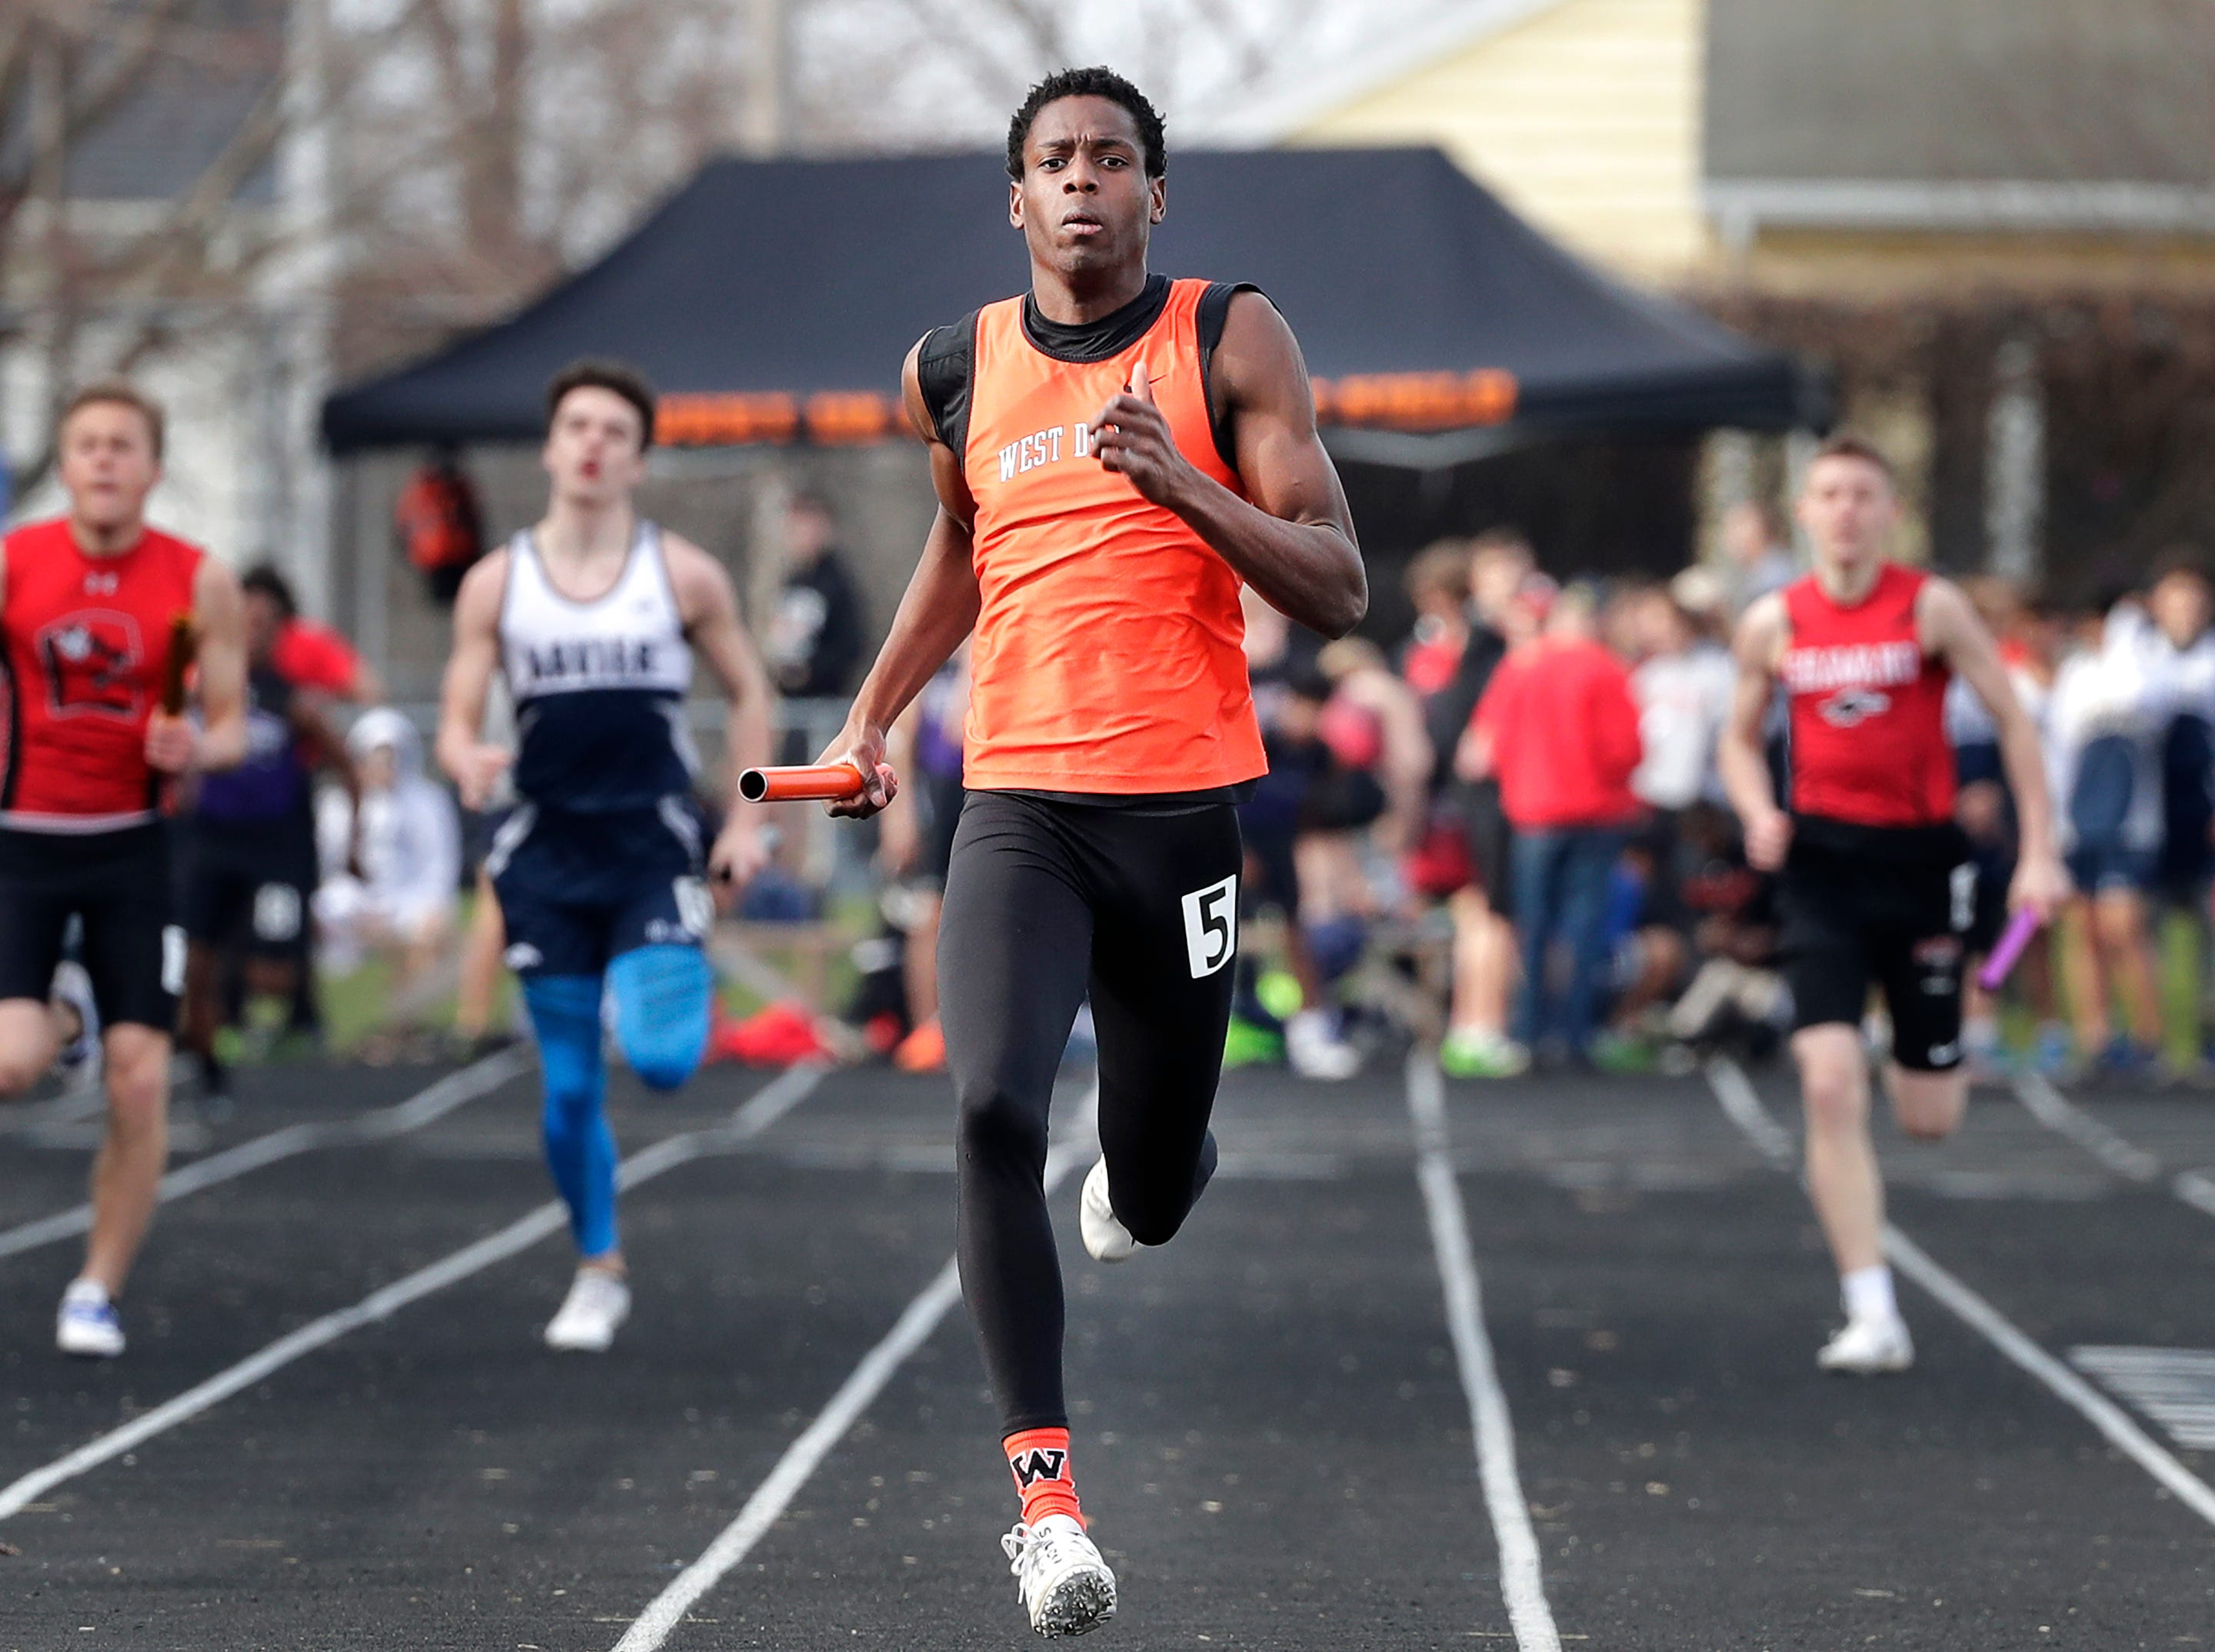 West De Pere High School's Tejay Evans competes in the 4 x 200m relay during a Bay Conference Relays track and field meet  on Tuesday, April 16, 2019 at Xavier High School, in Appleton, Wis. Wm. Glasheen/USA TODAY NETWORK-Wisconsin.